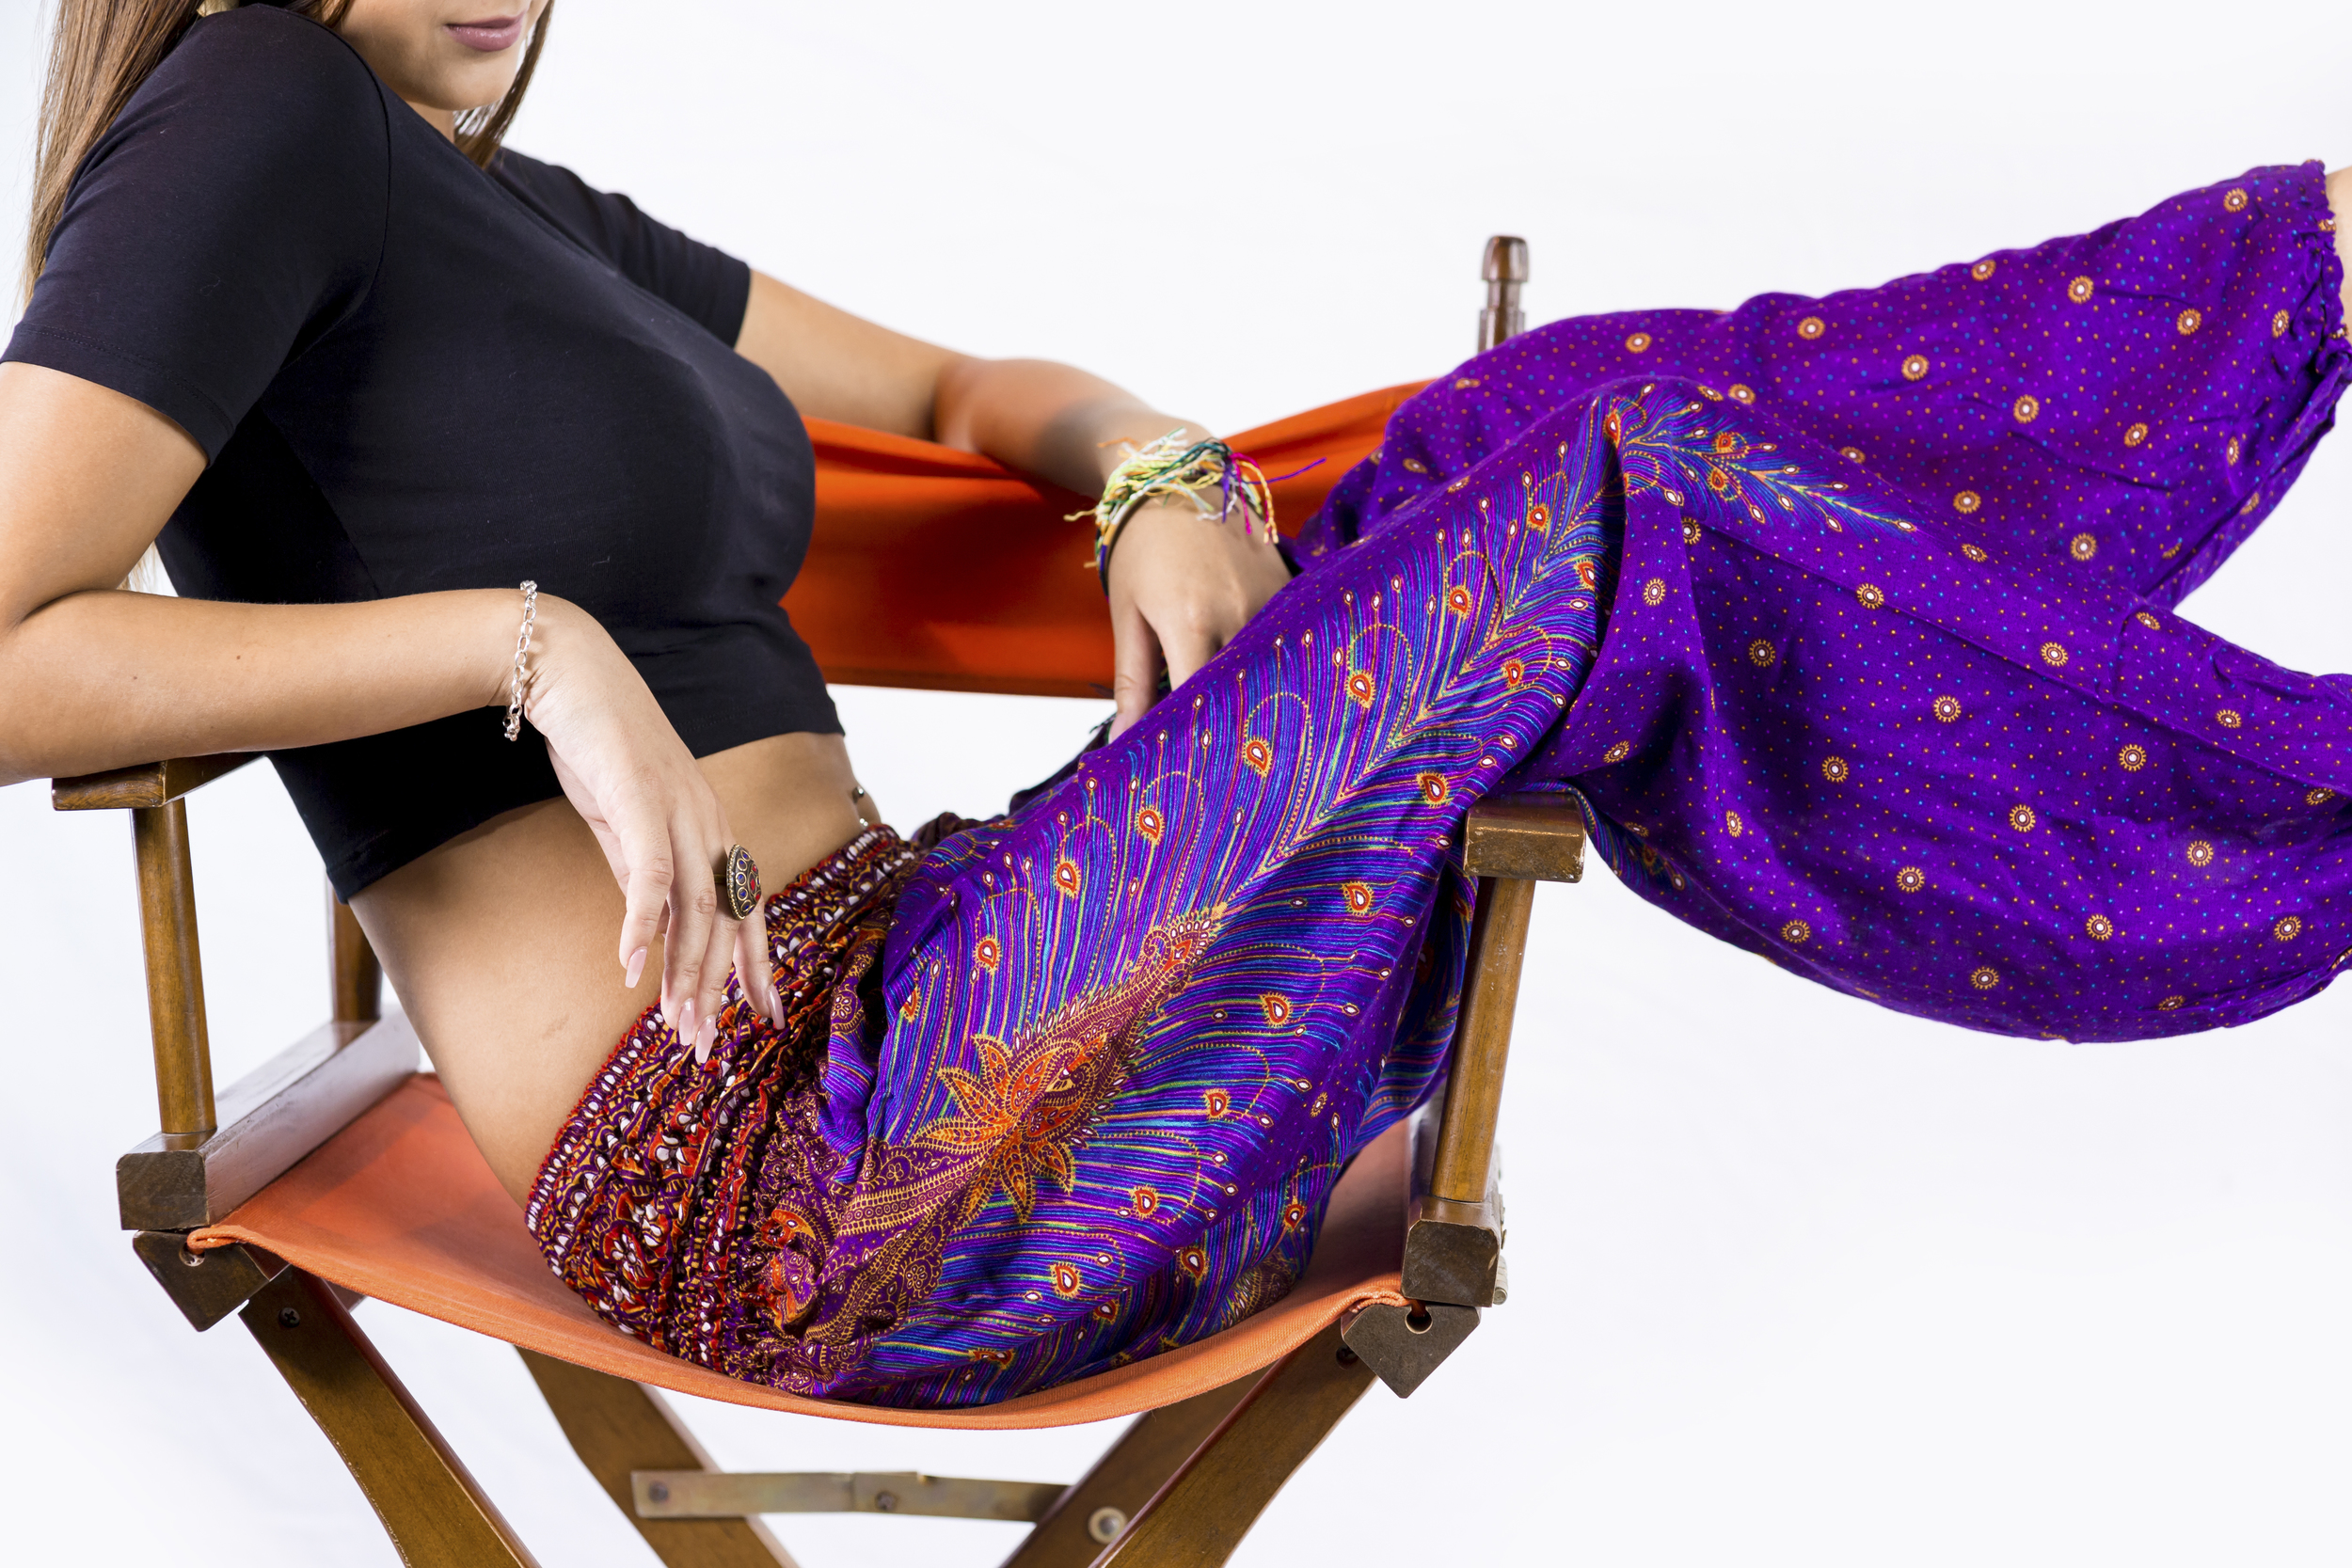 Free shipping  on all orders of 100 pairs or more. Includes helpful tips for successful fundraising. Meet your goals with these amazing pants from Thailand.